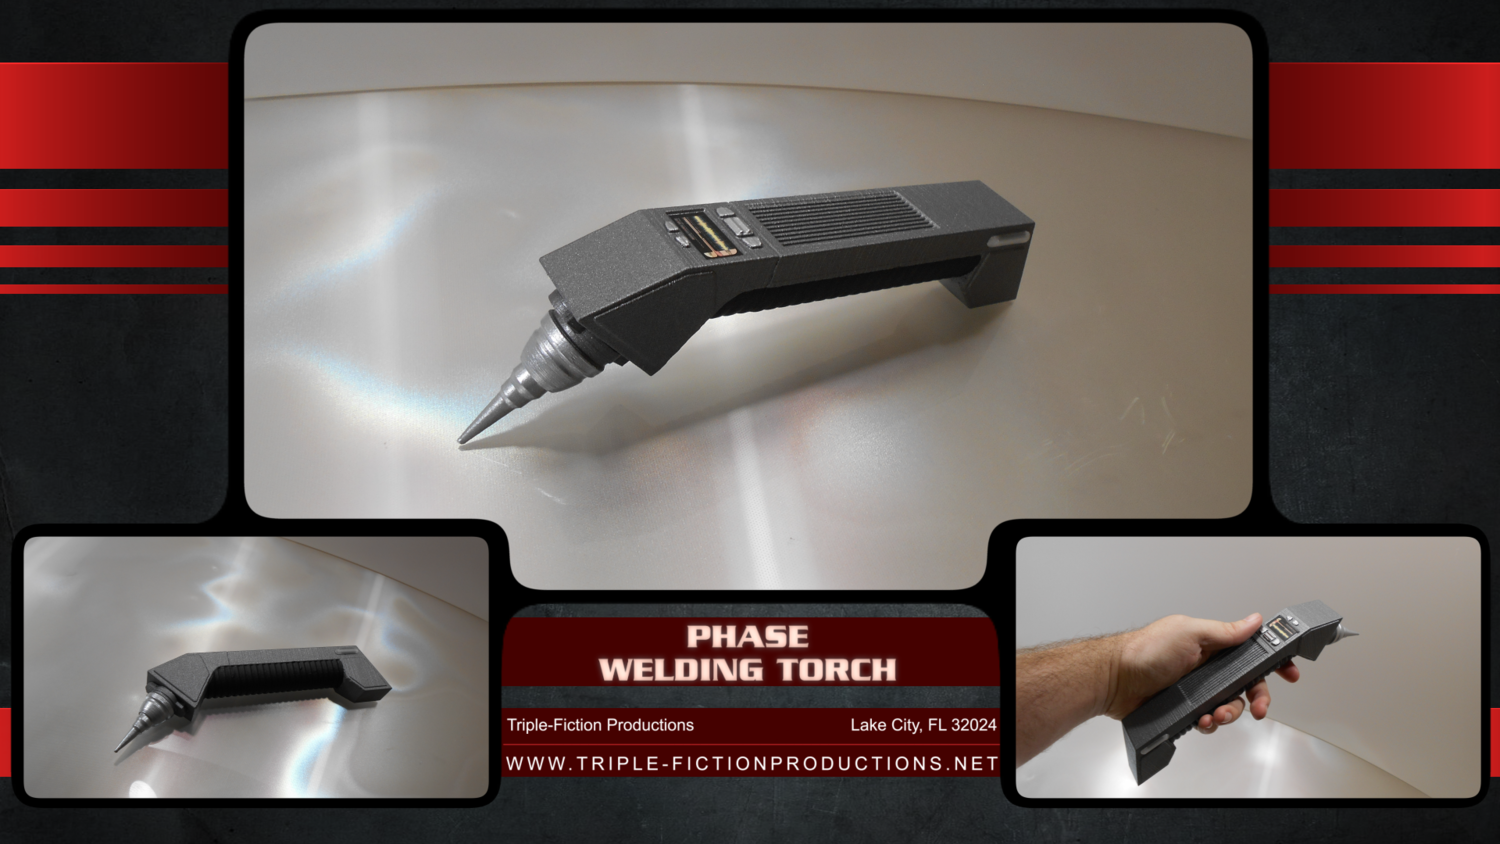 Phase Welding Torch